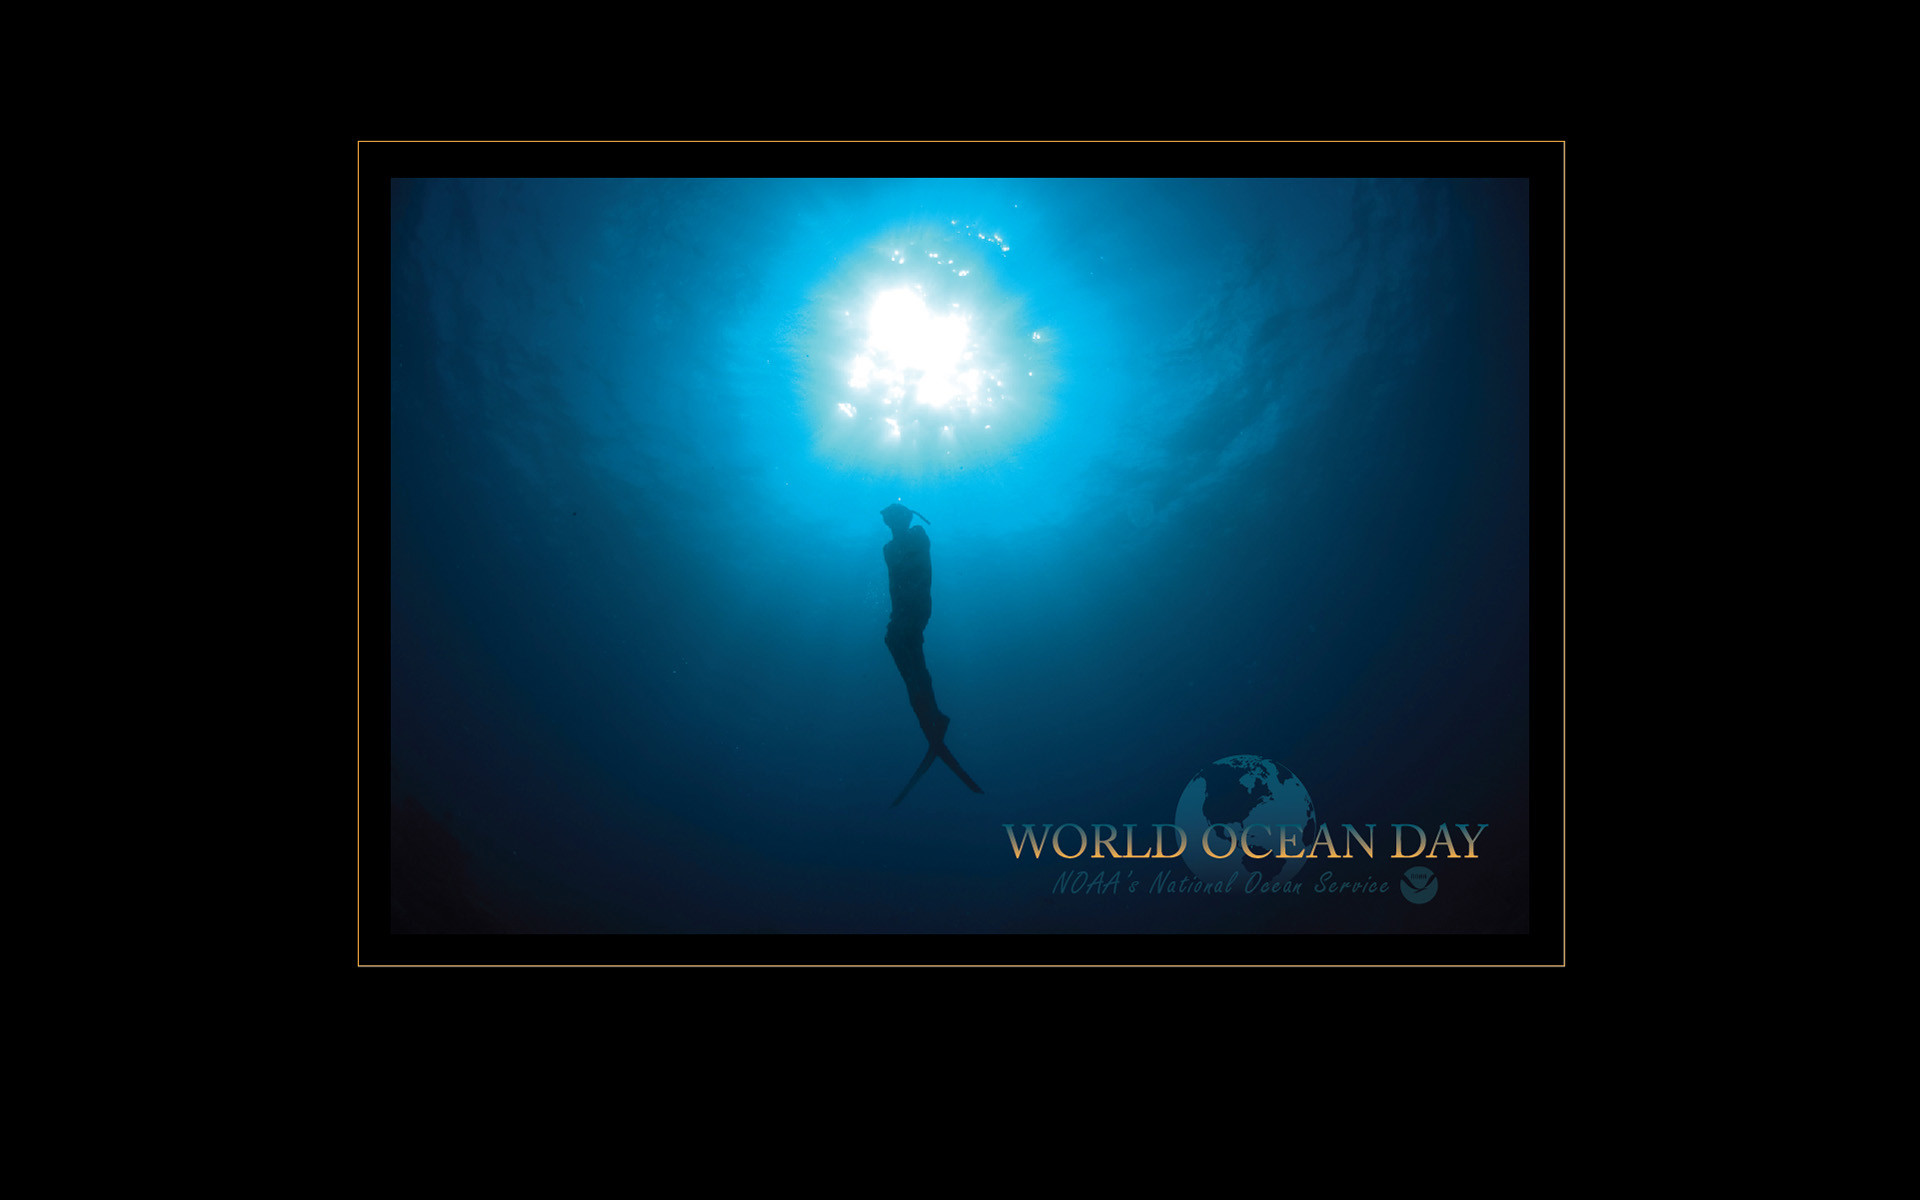 1920x1200 World Ocean Day (Greg McFall)